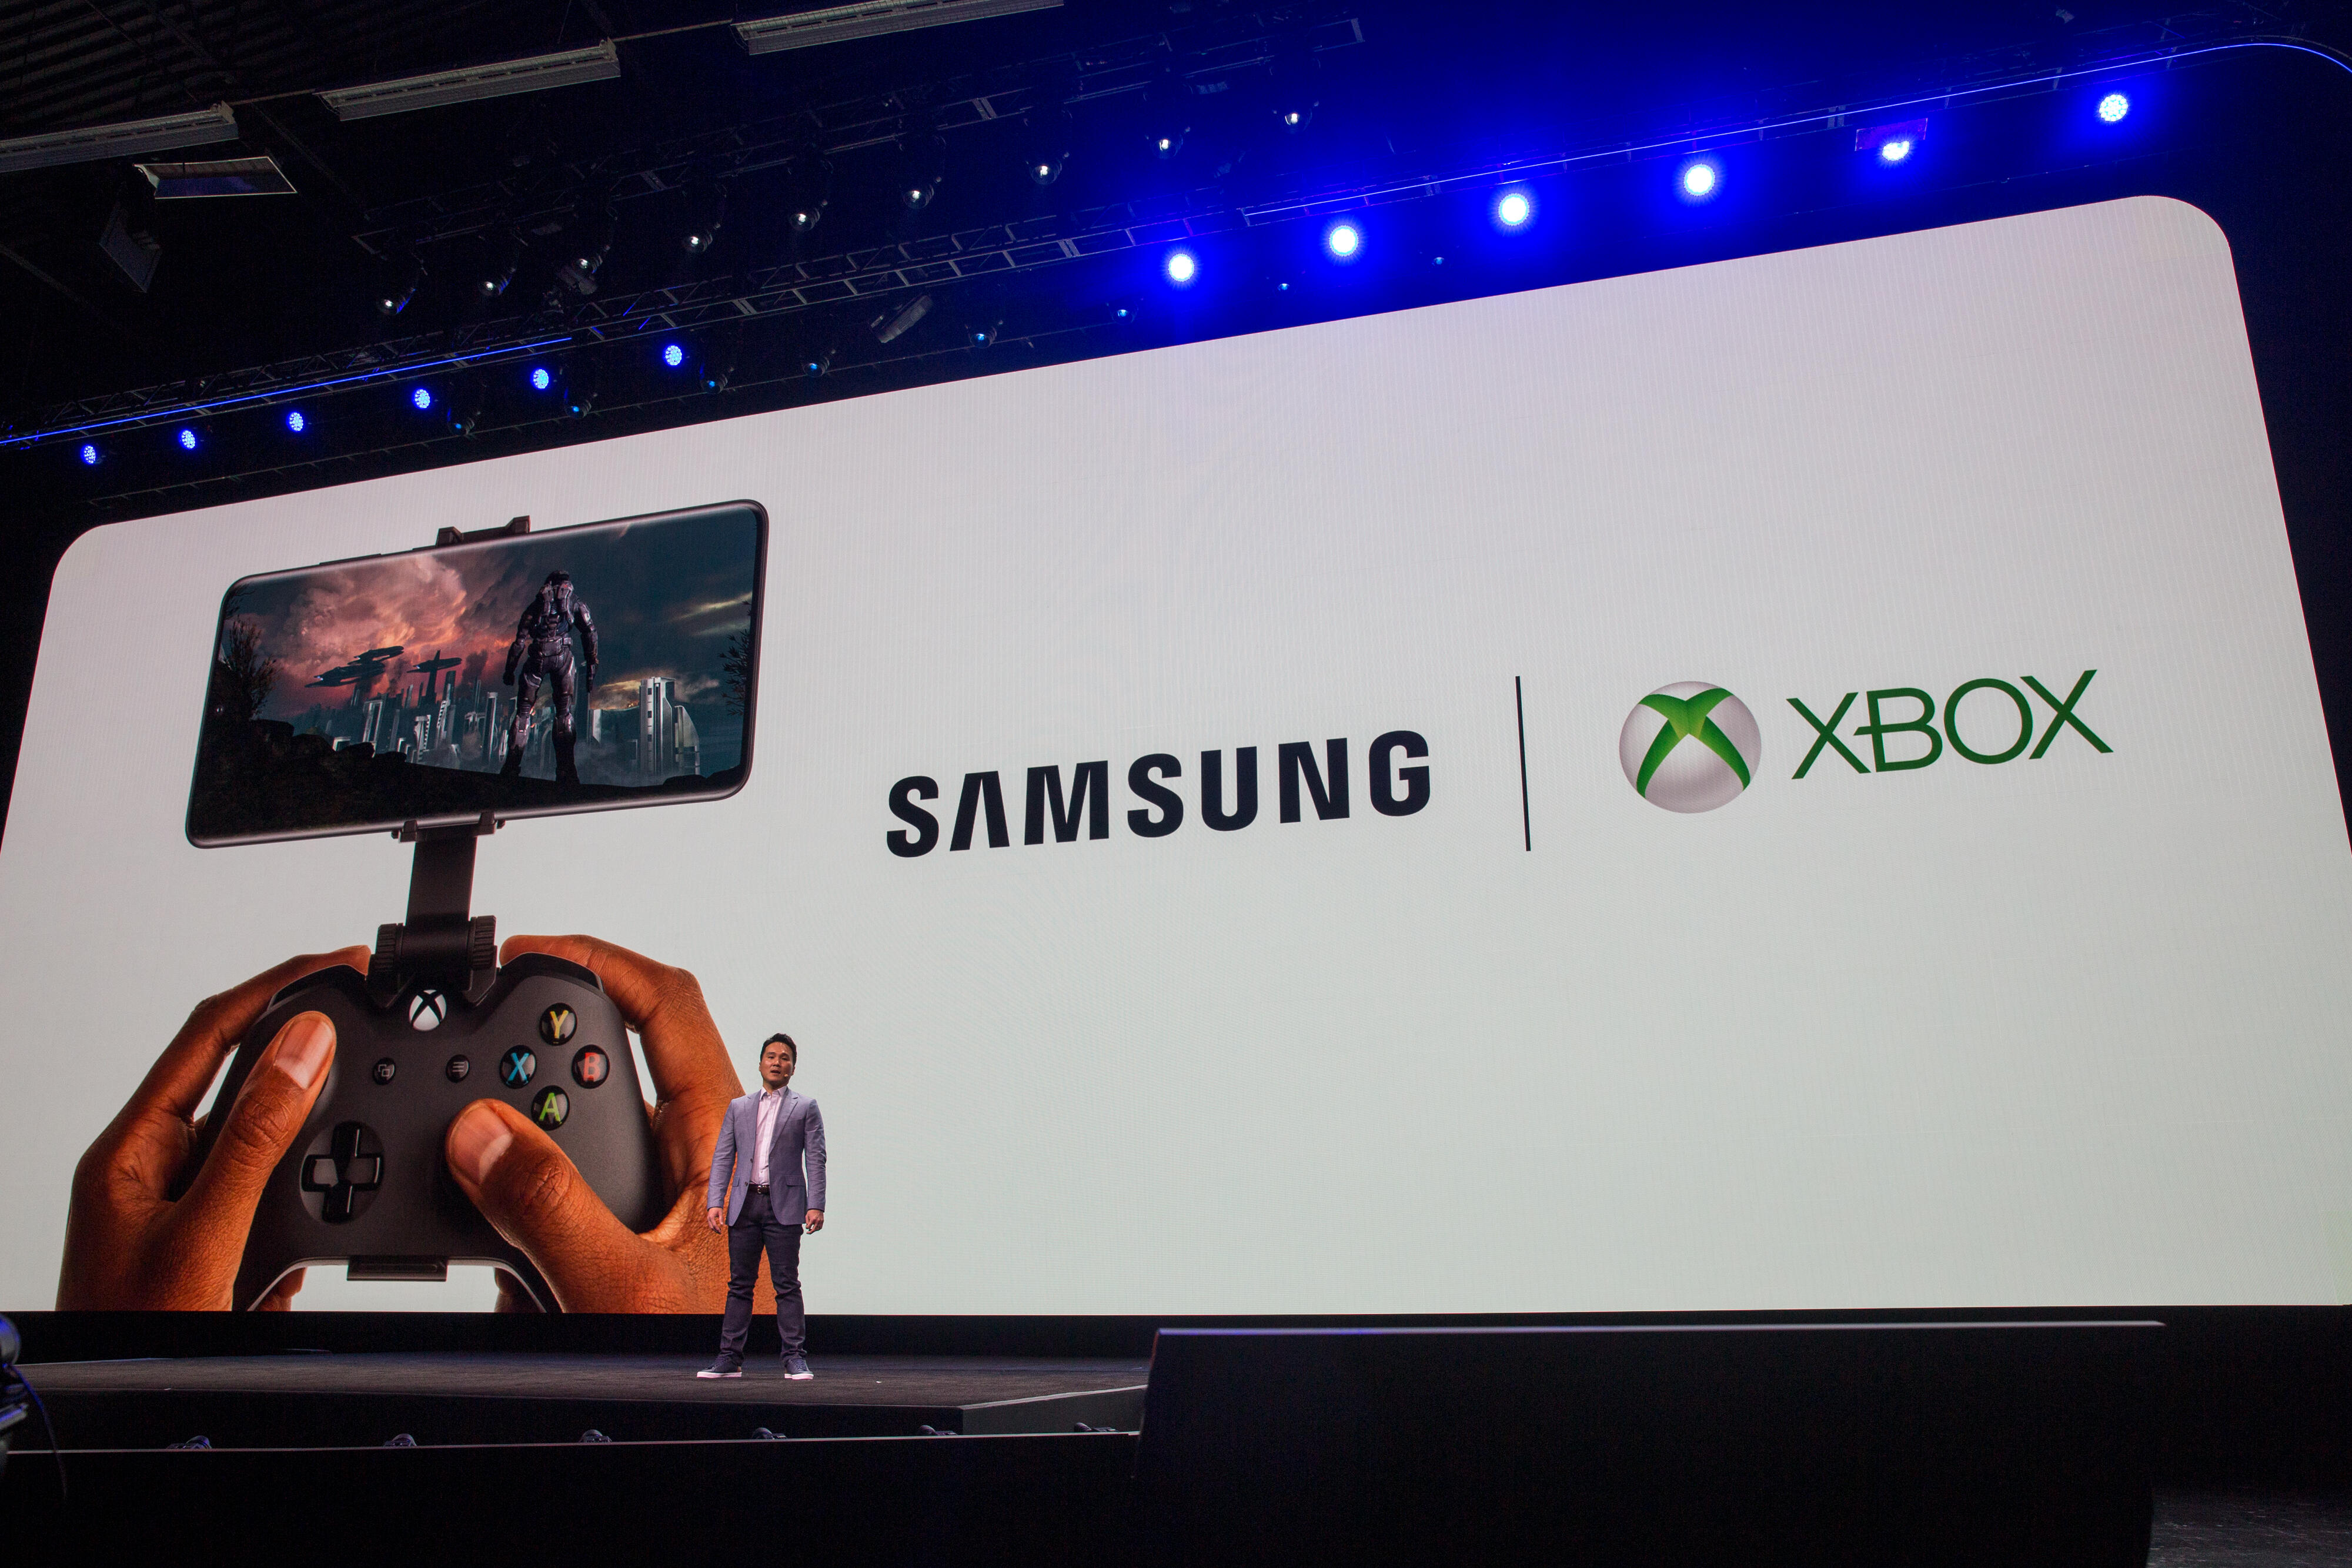 Galaxy S20 and Xbox